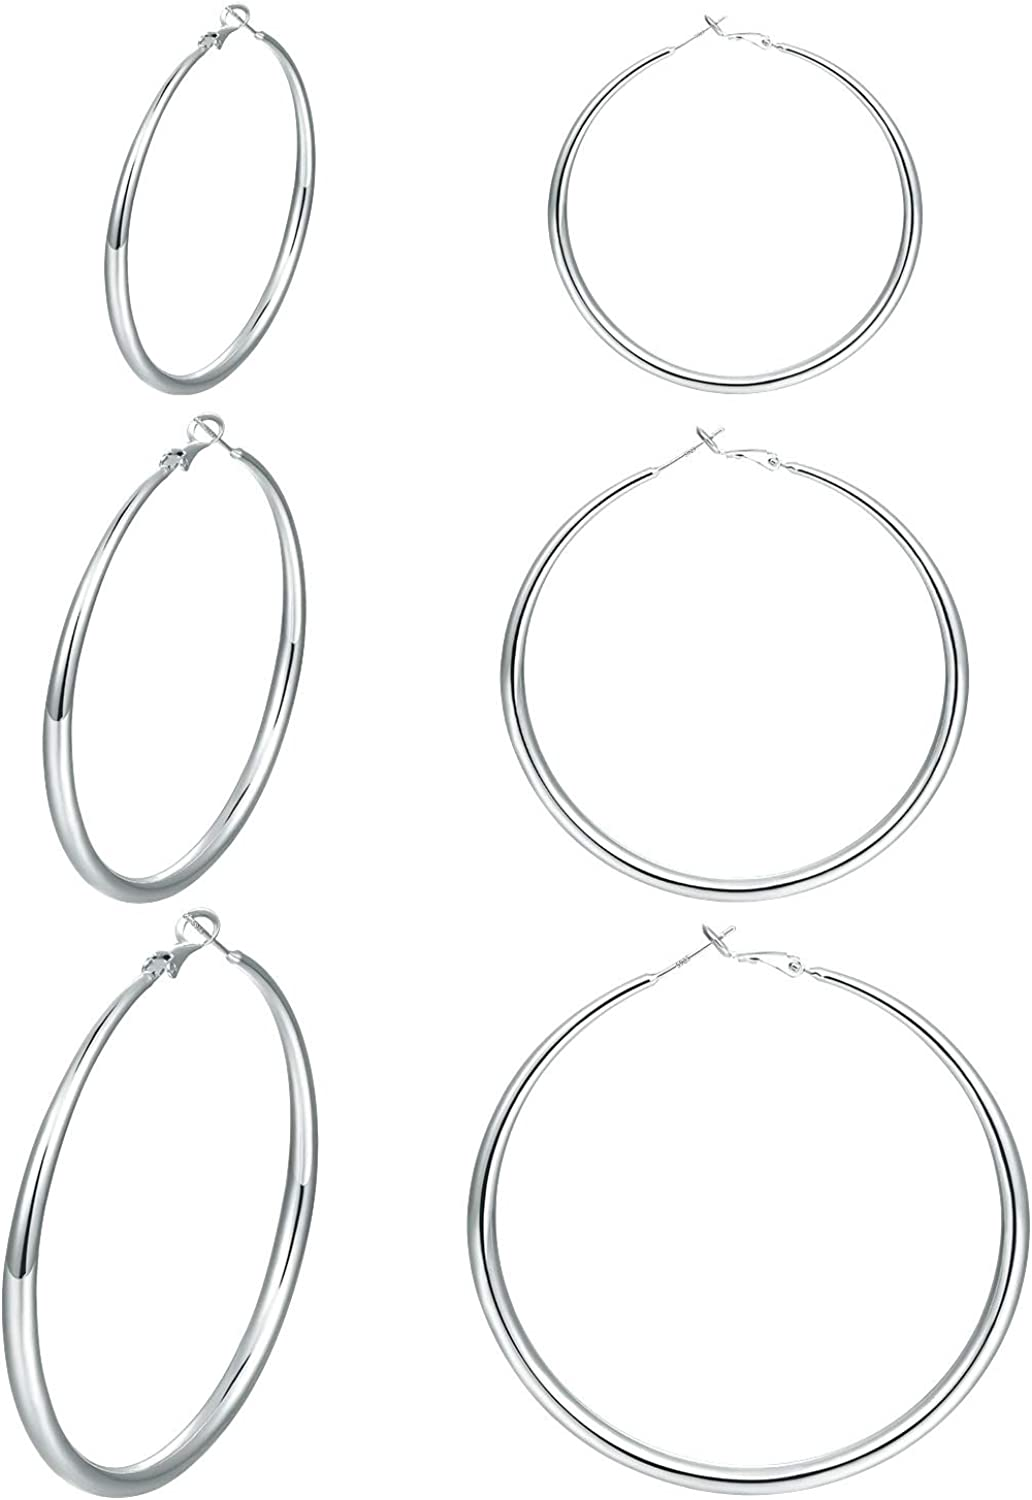 Details about  /Silver Organic Hoop Earrings Solid Sterling Silver 925 Hallmarked Hoops